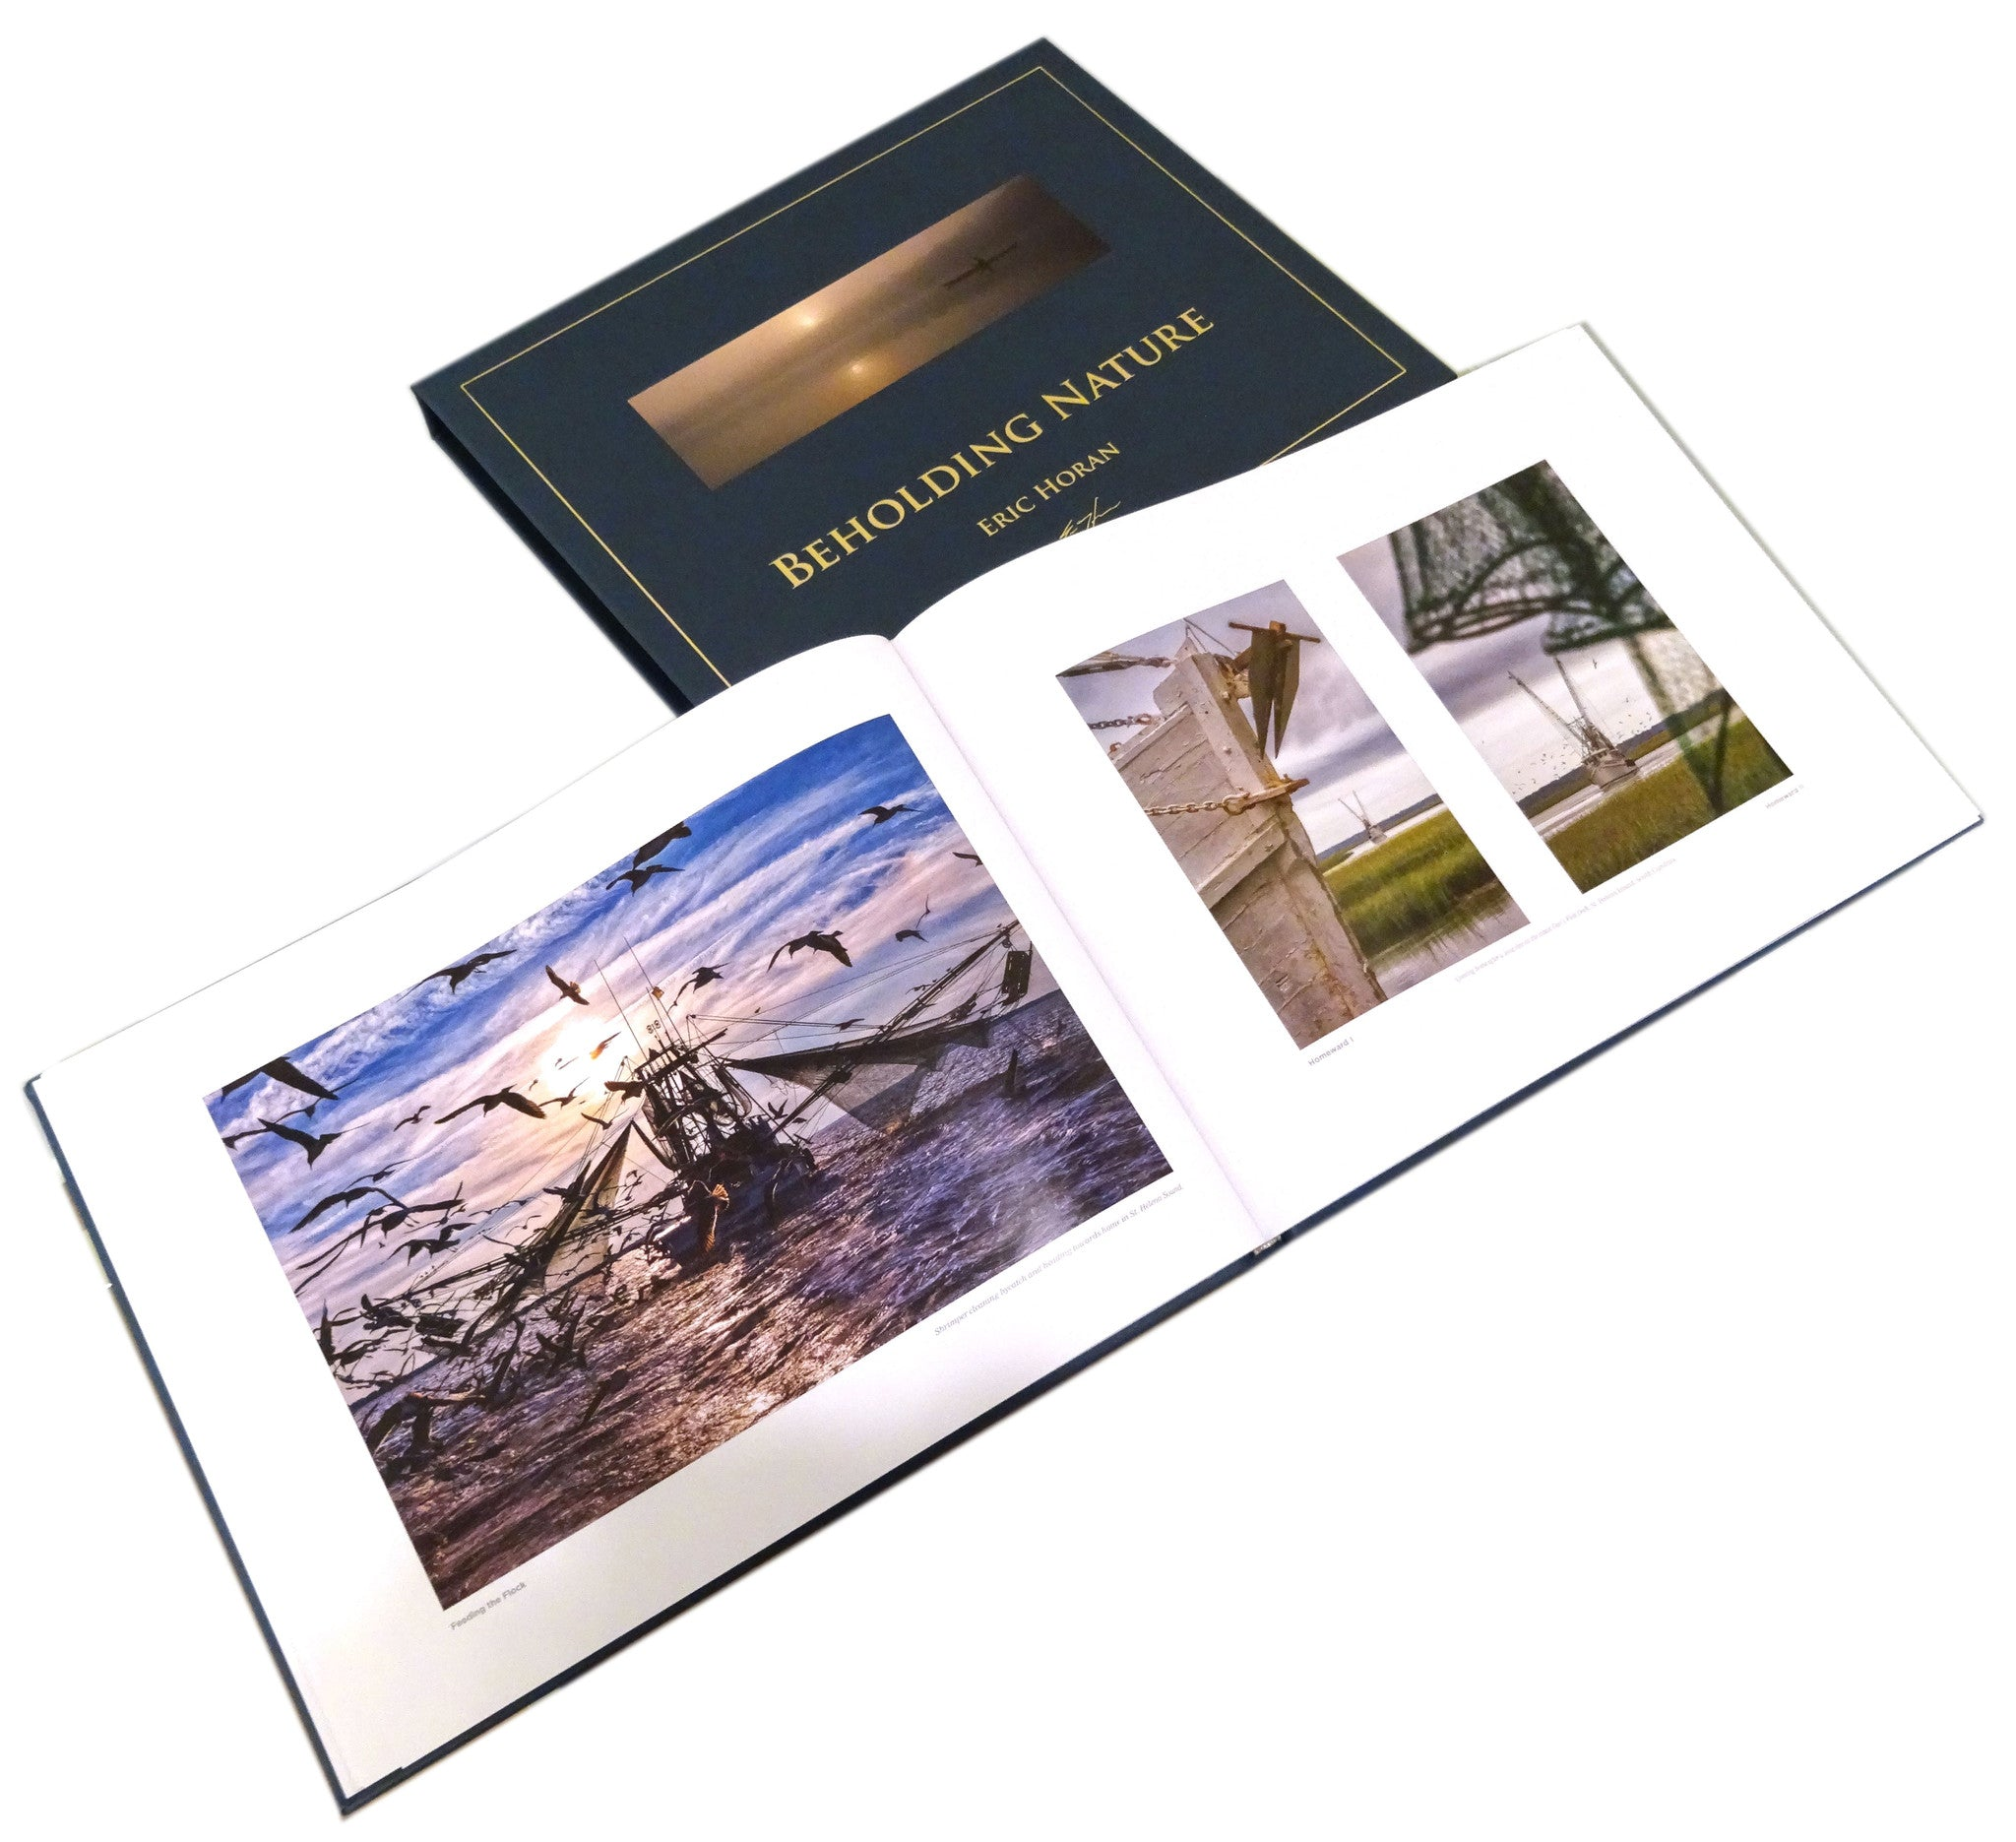 Collectors Edition Beholding Nature Photography book Eric Horan and Starbooks